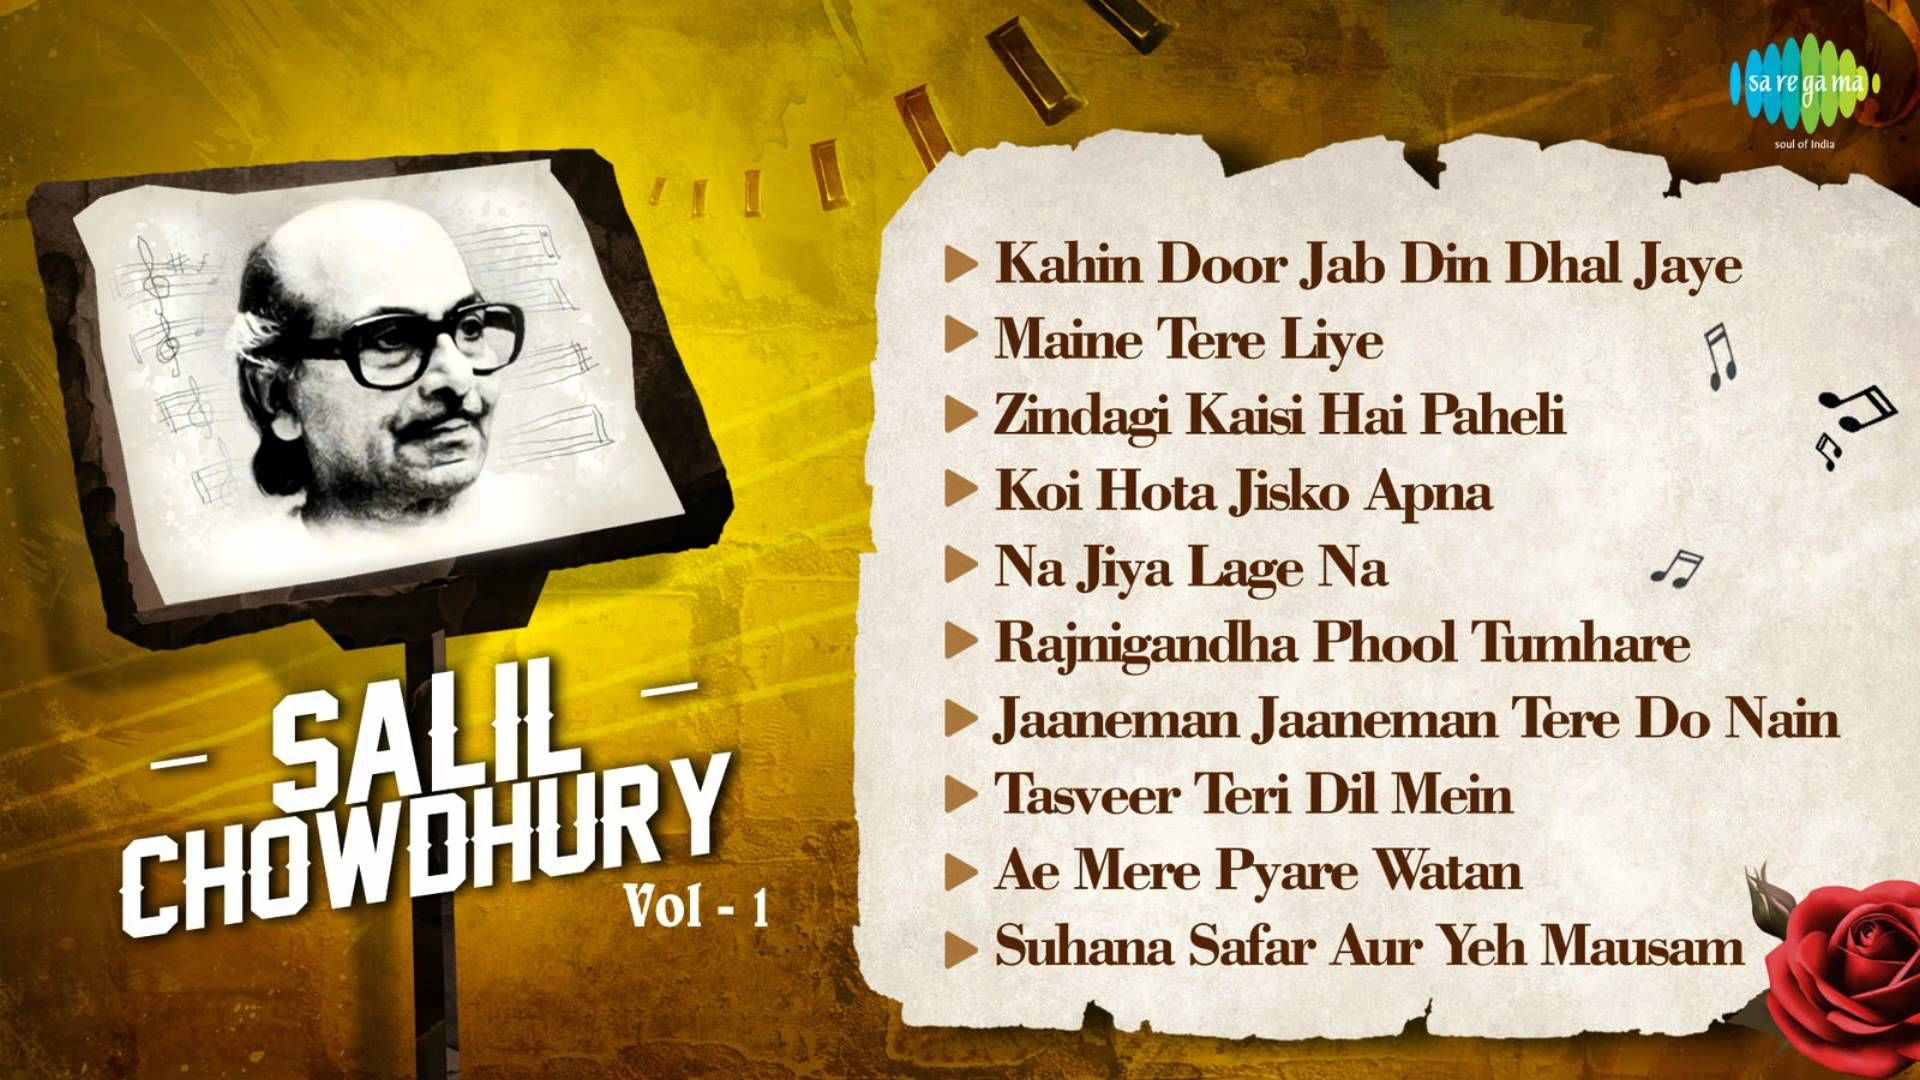 Best Of Salil Chowdhury - Old Hindi Songs - Indian Music